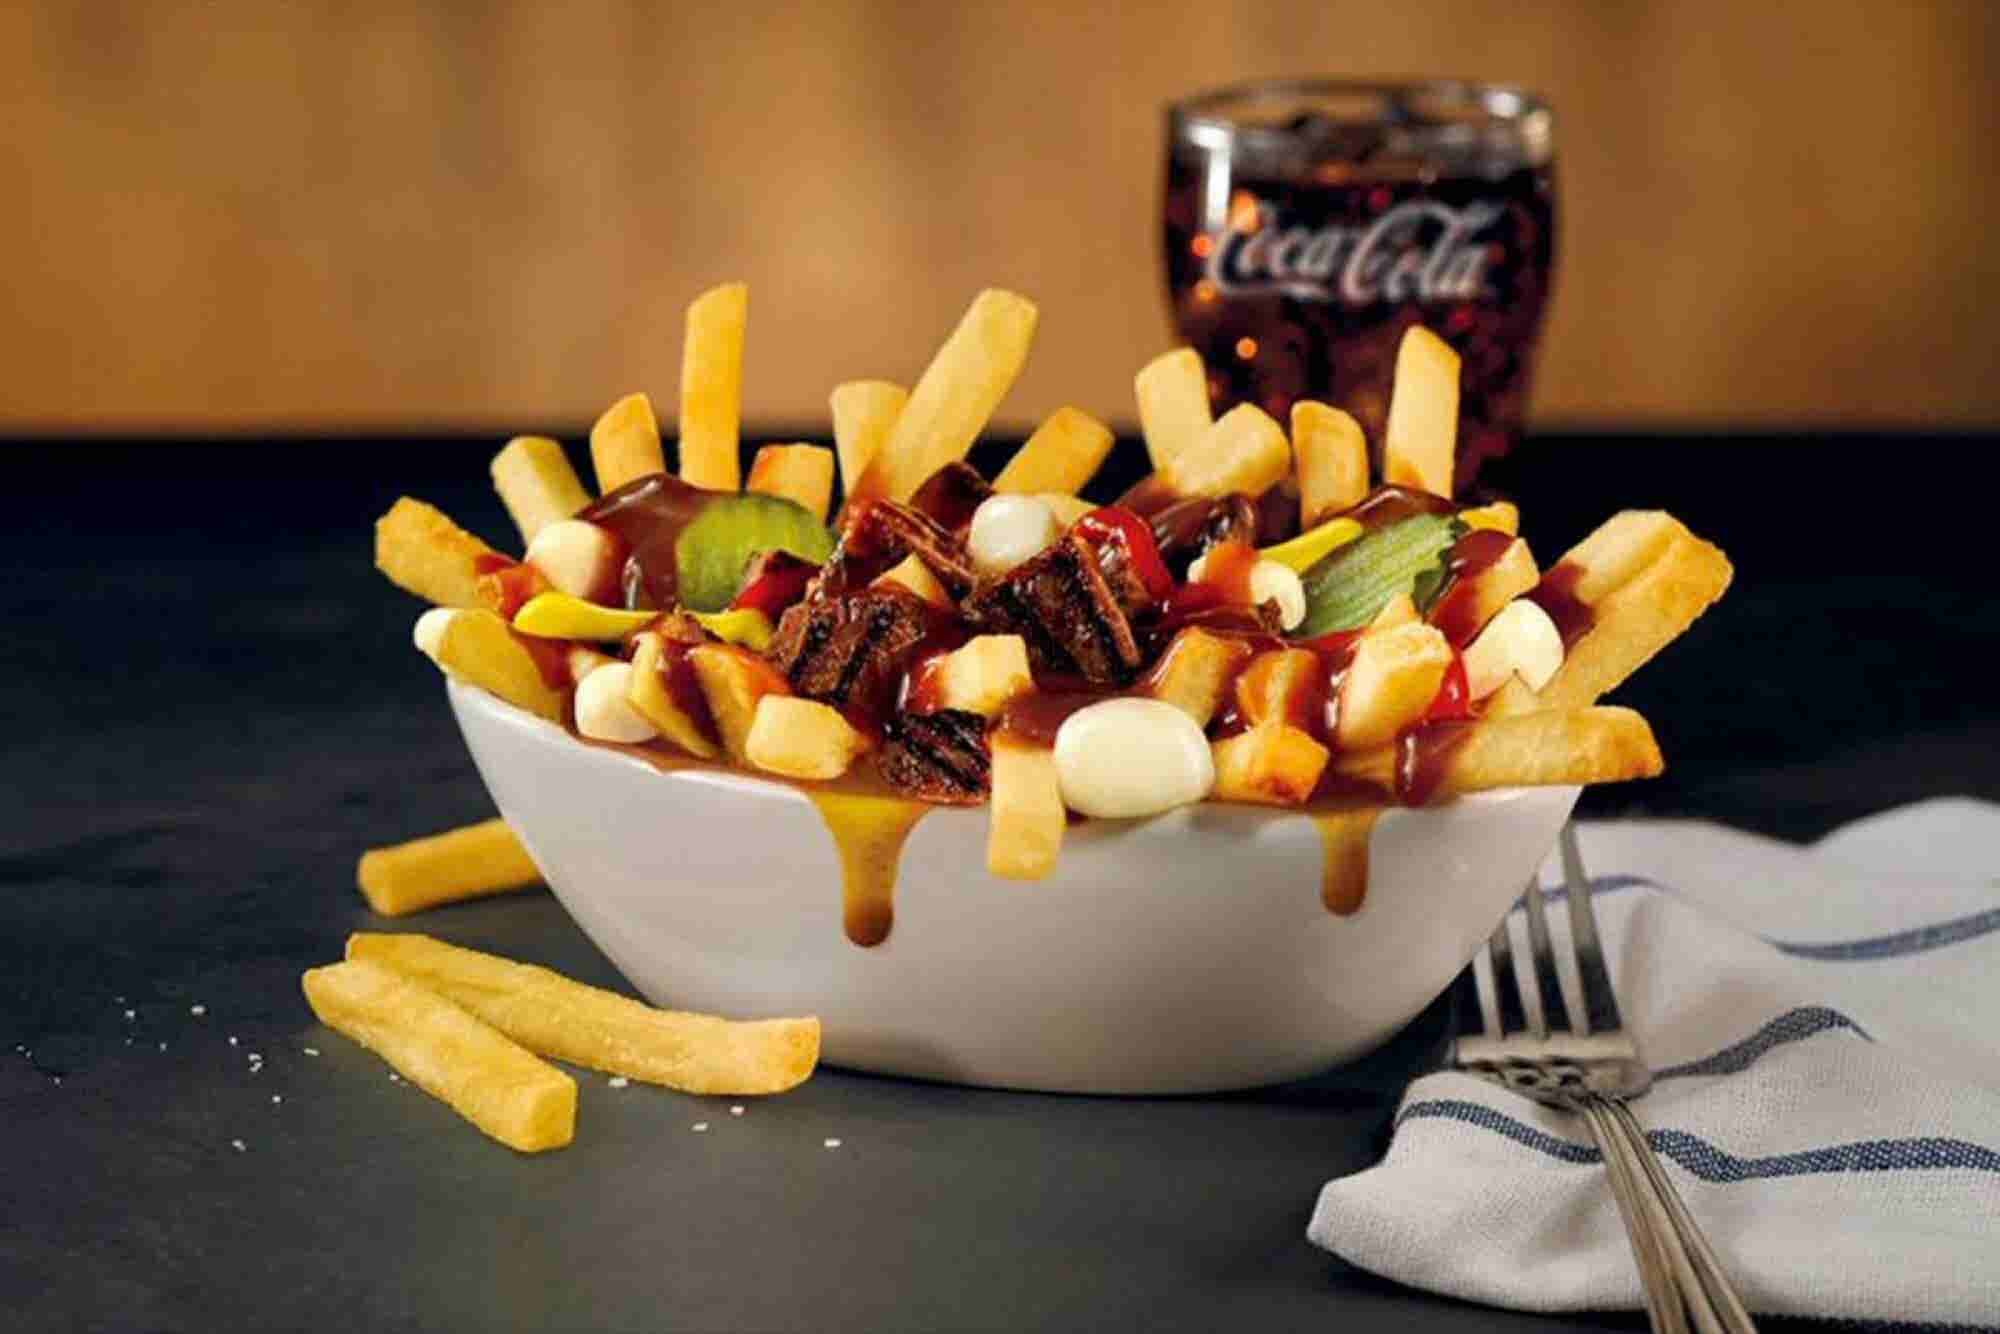 Burger King Launches the Ultimate Canadian Mashup: Poutine Topped With a Whopper